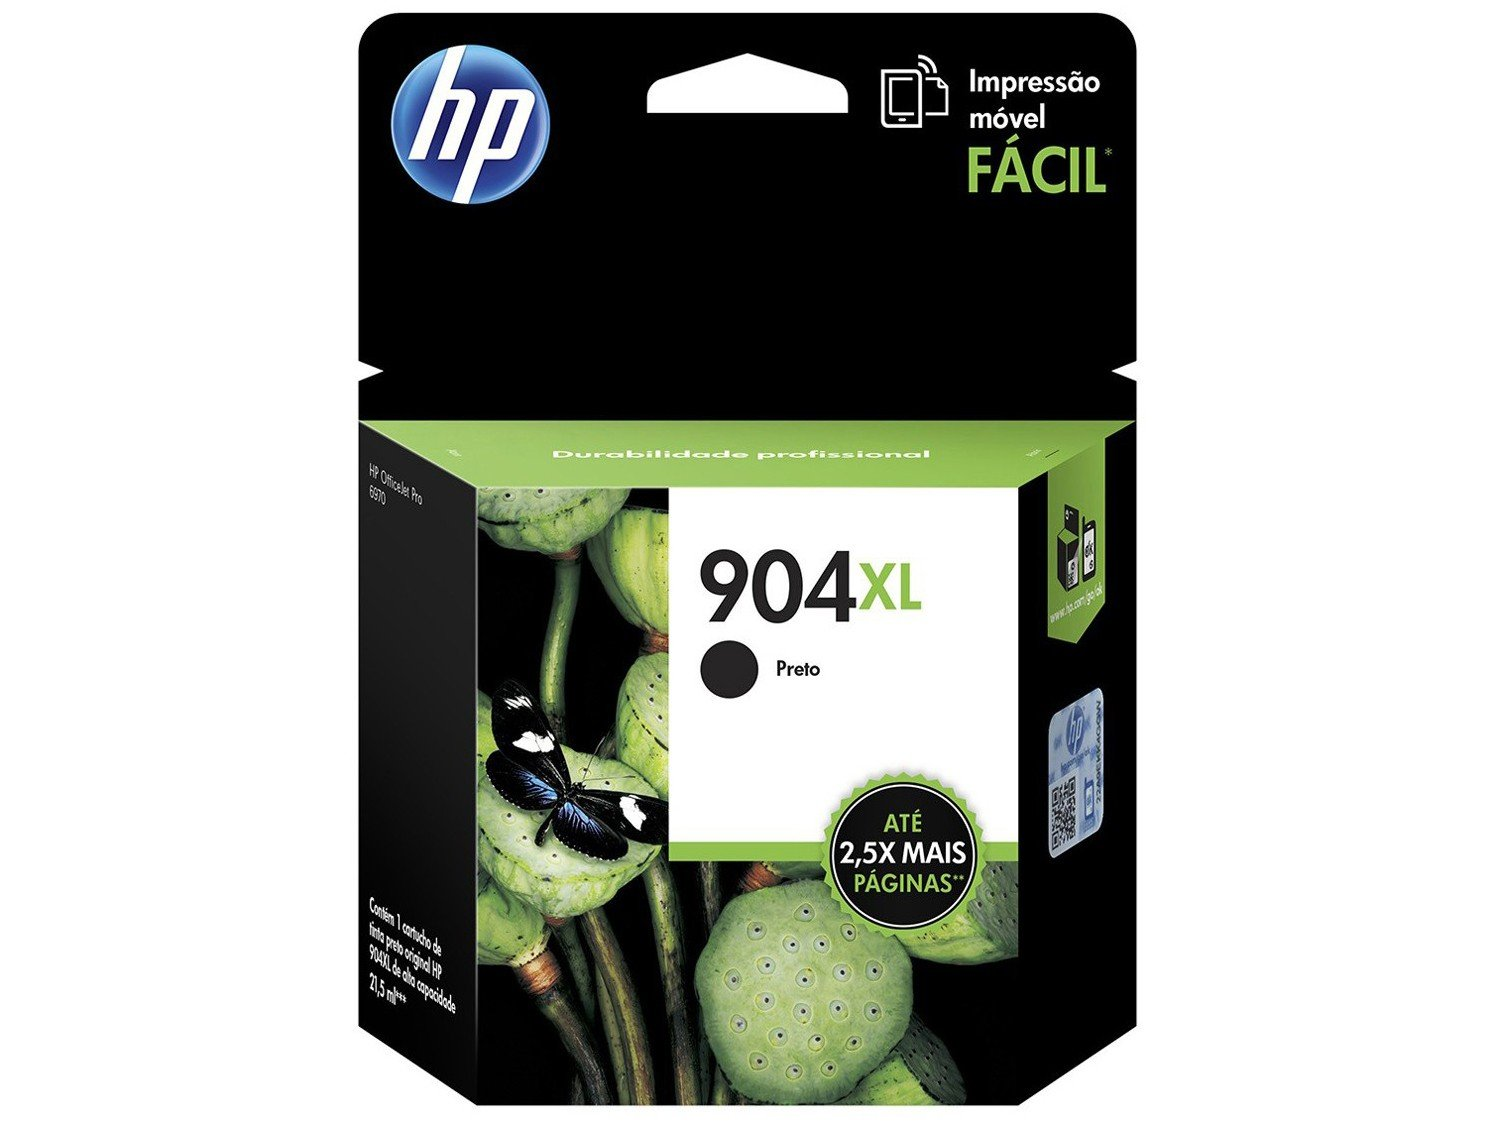 Cartucho de Tinta HP Preto 904XL - Original para HP 6970